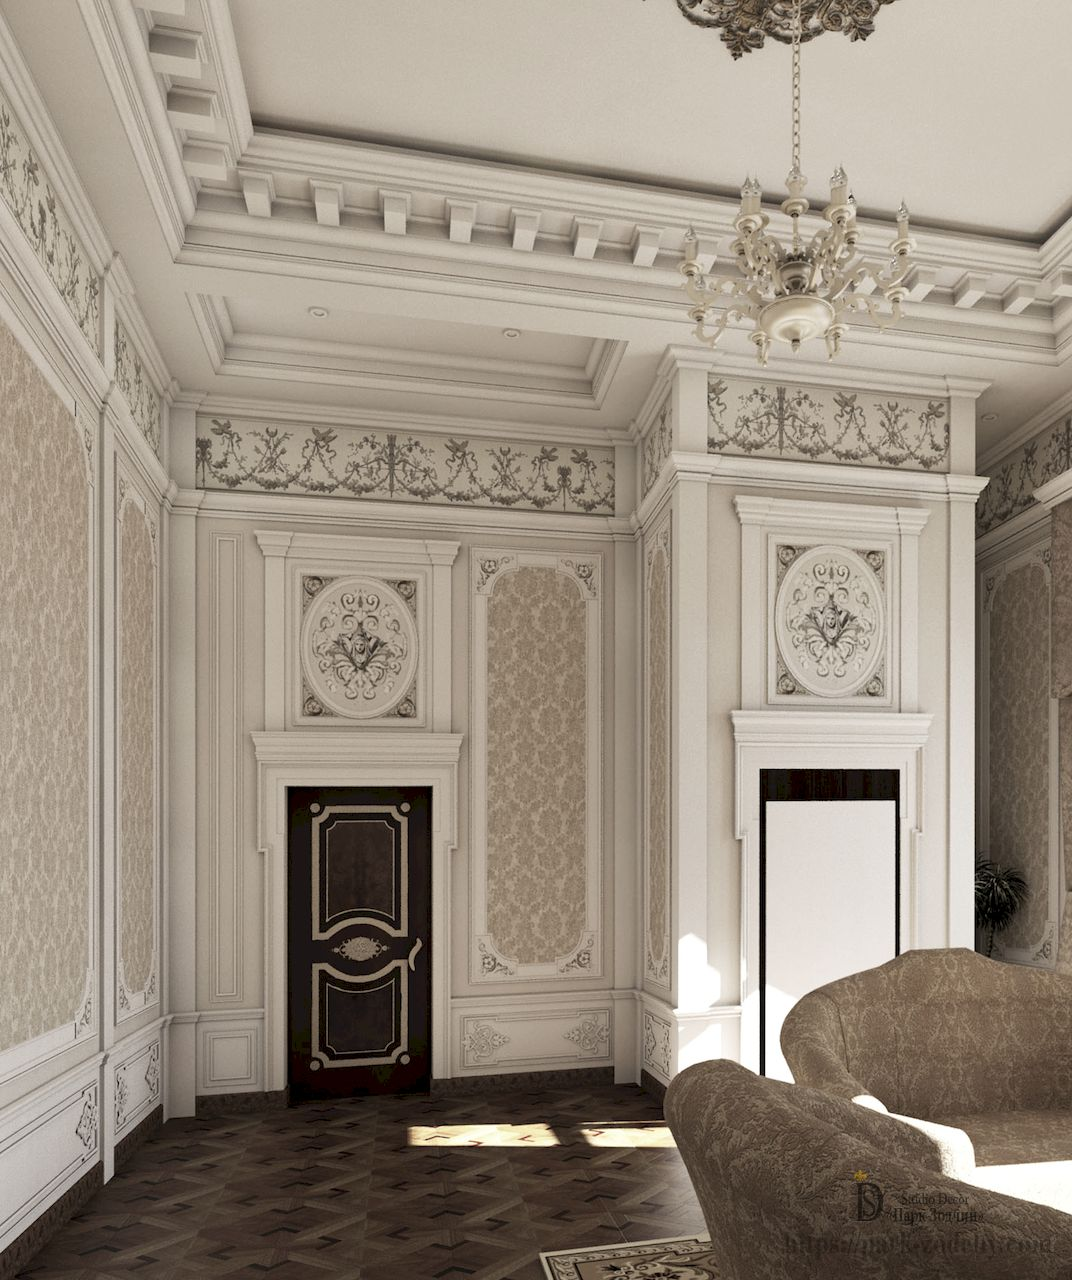 The completed project of decorating a living room in the Empire style